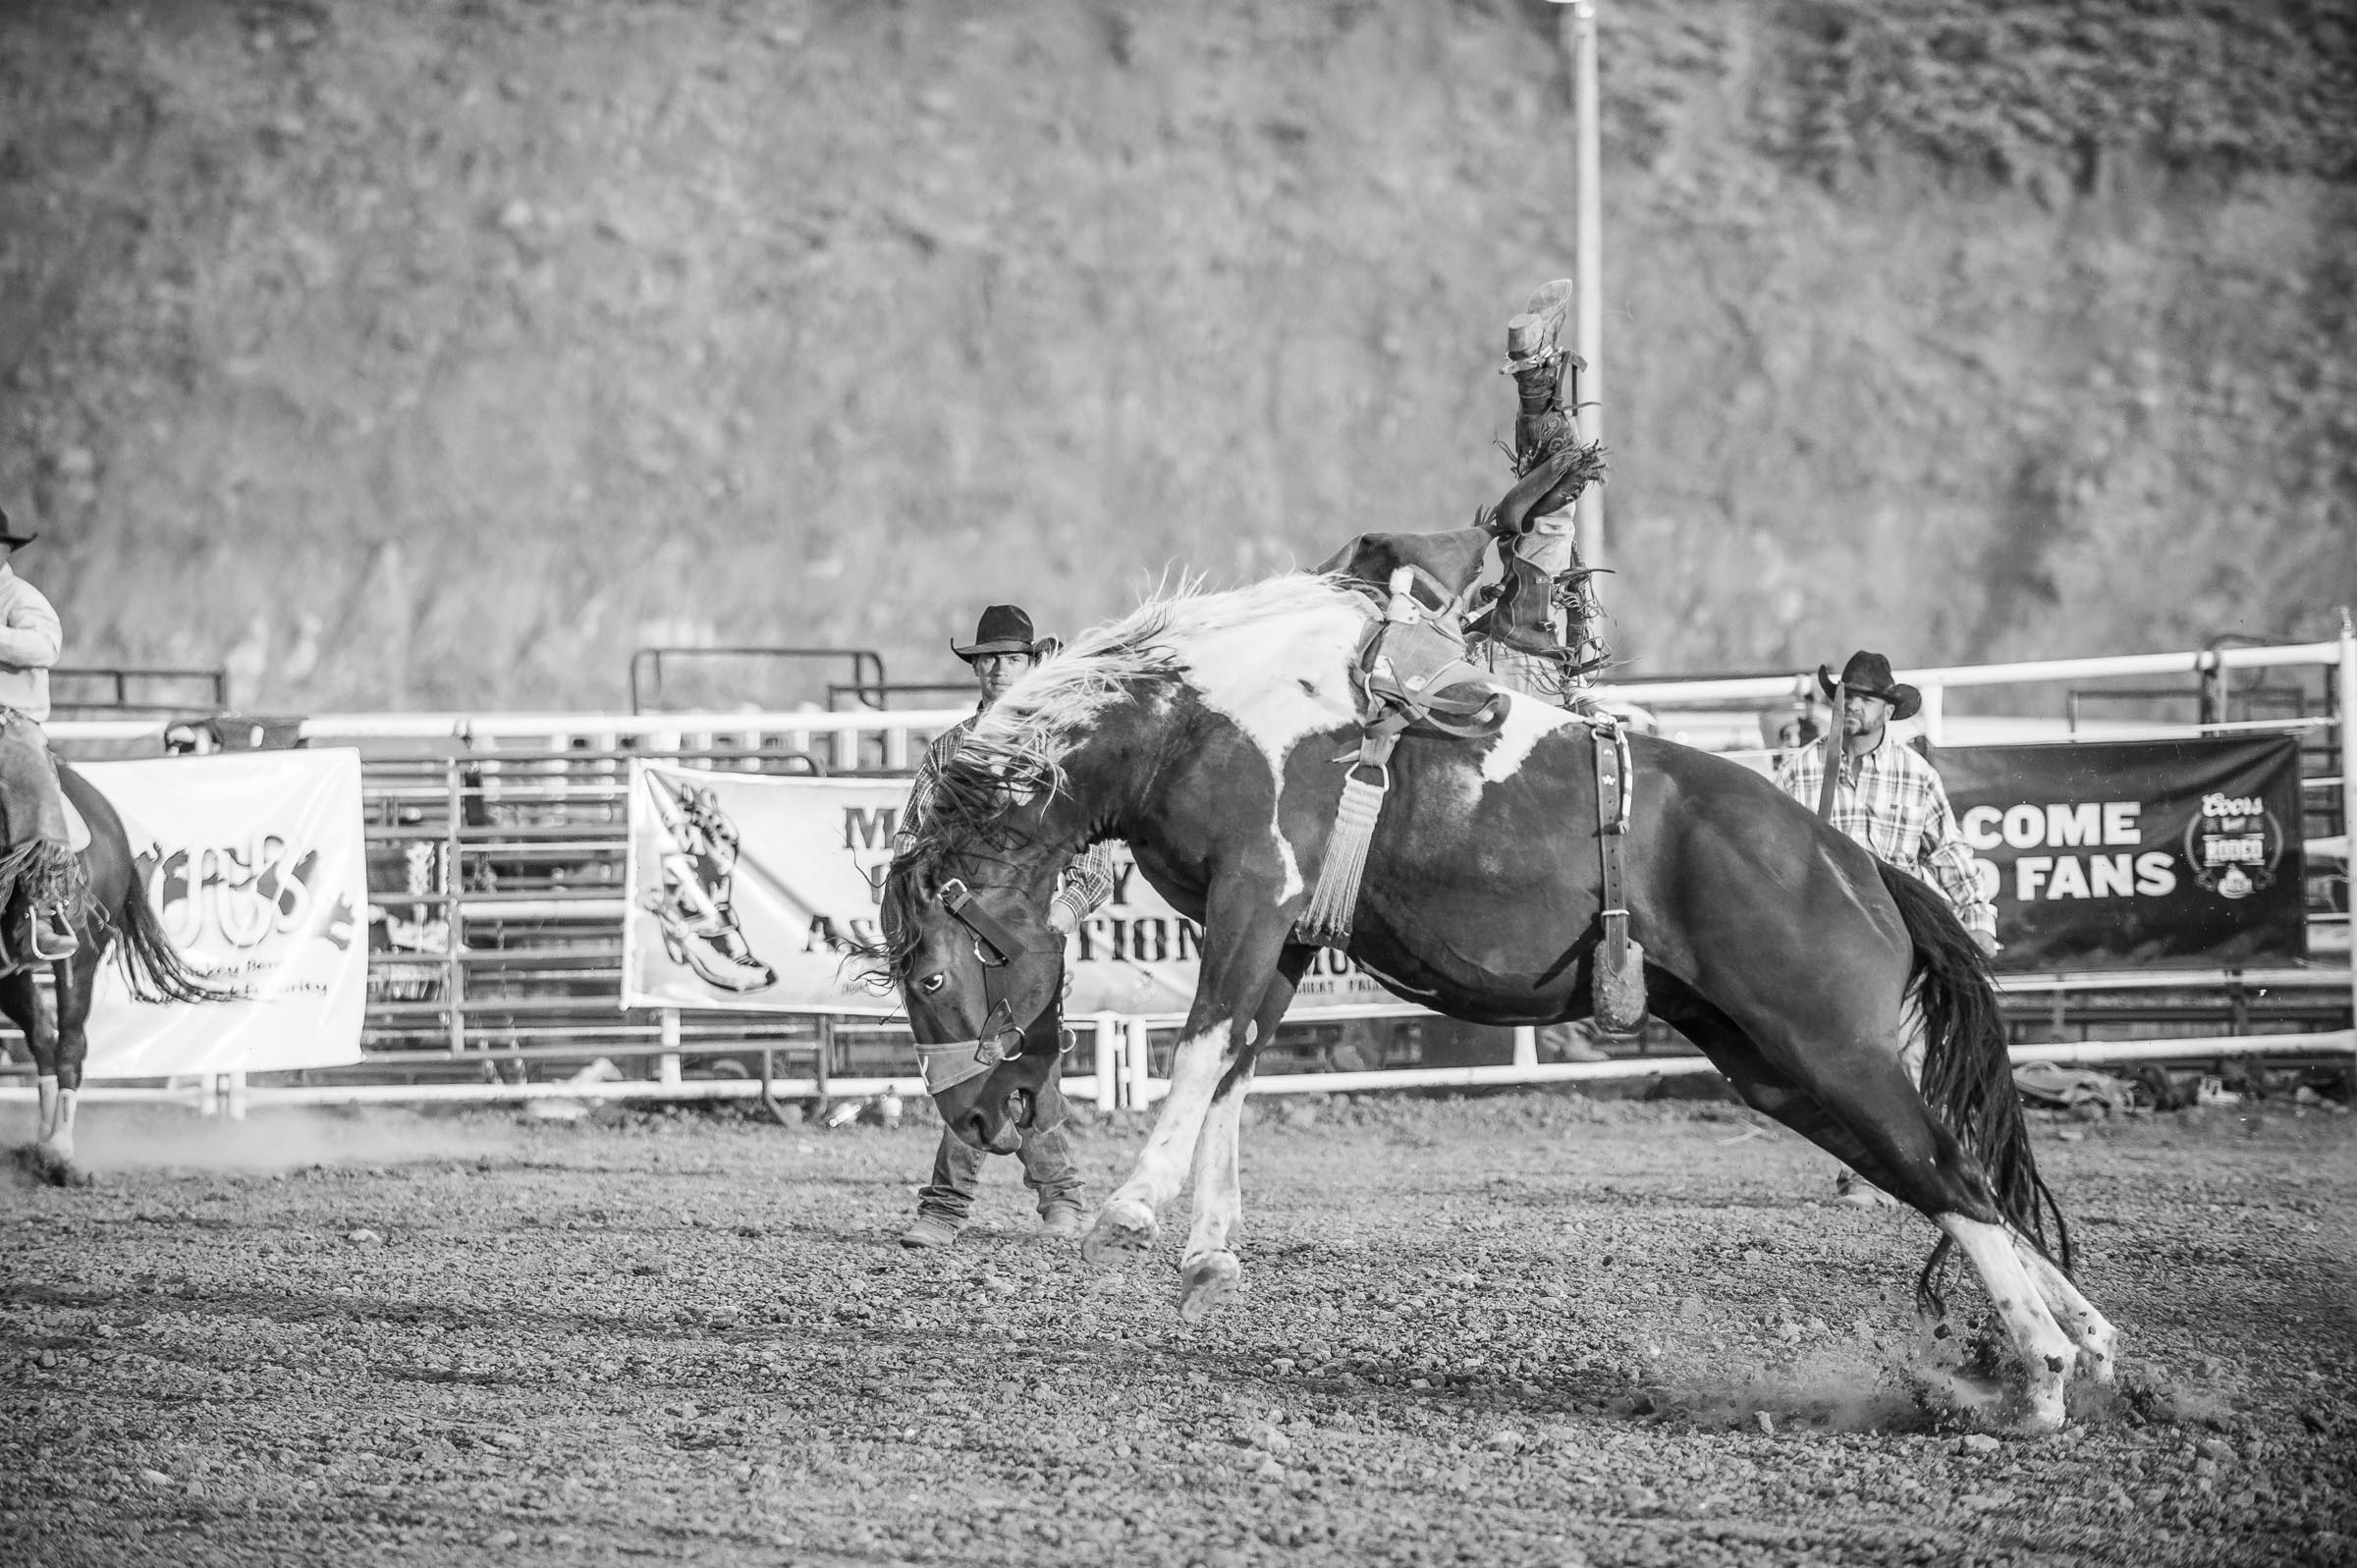 Bareback bucking horse and rider © Tony Bynum